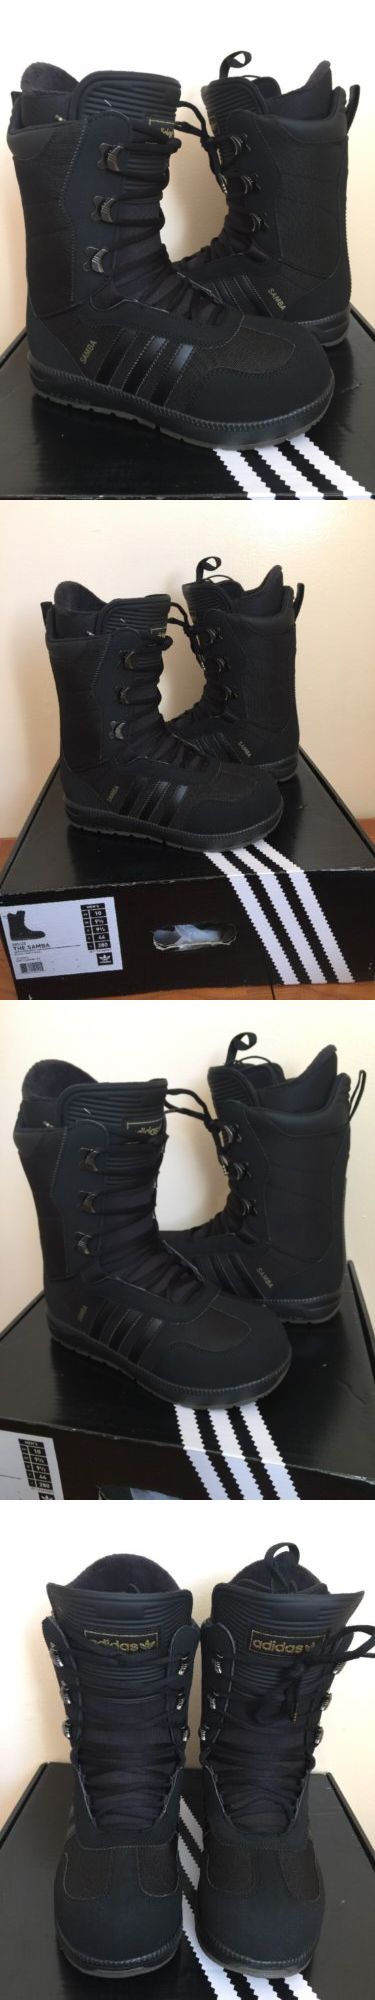 Boots 36292: New Mens Adidas The Samba Snowboard Boots 10 Black Gum Gold Rare S85658 BUY IT NOW ONLY: $155.0